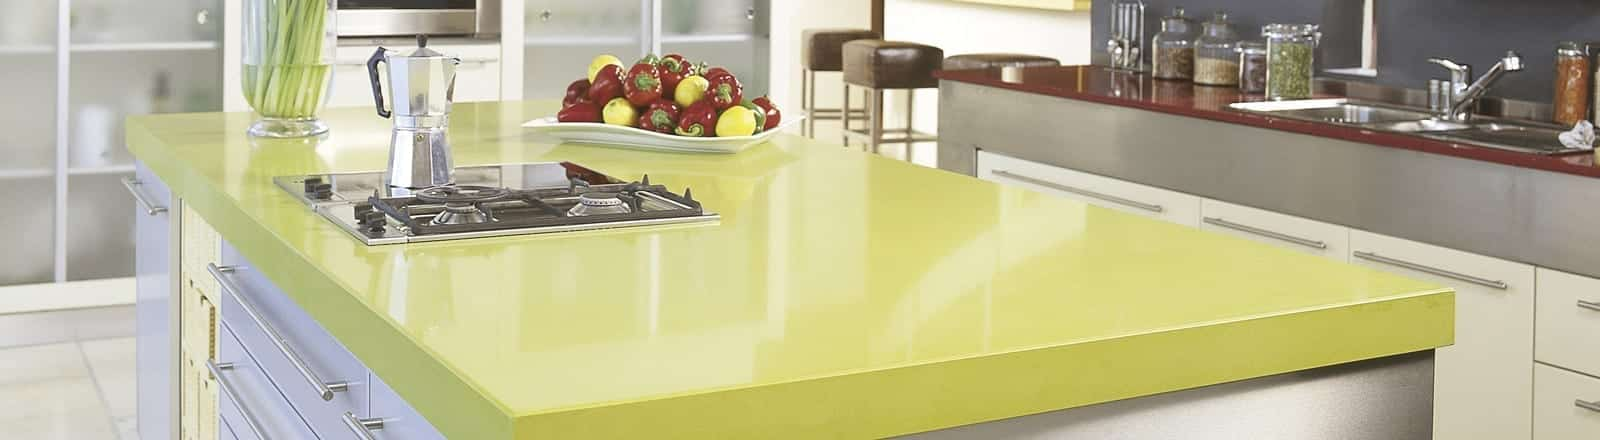 Corian Countertop Installation and Repair in Frederick, Maryland